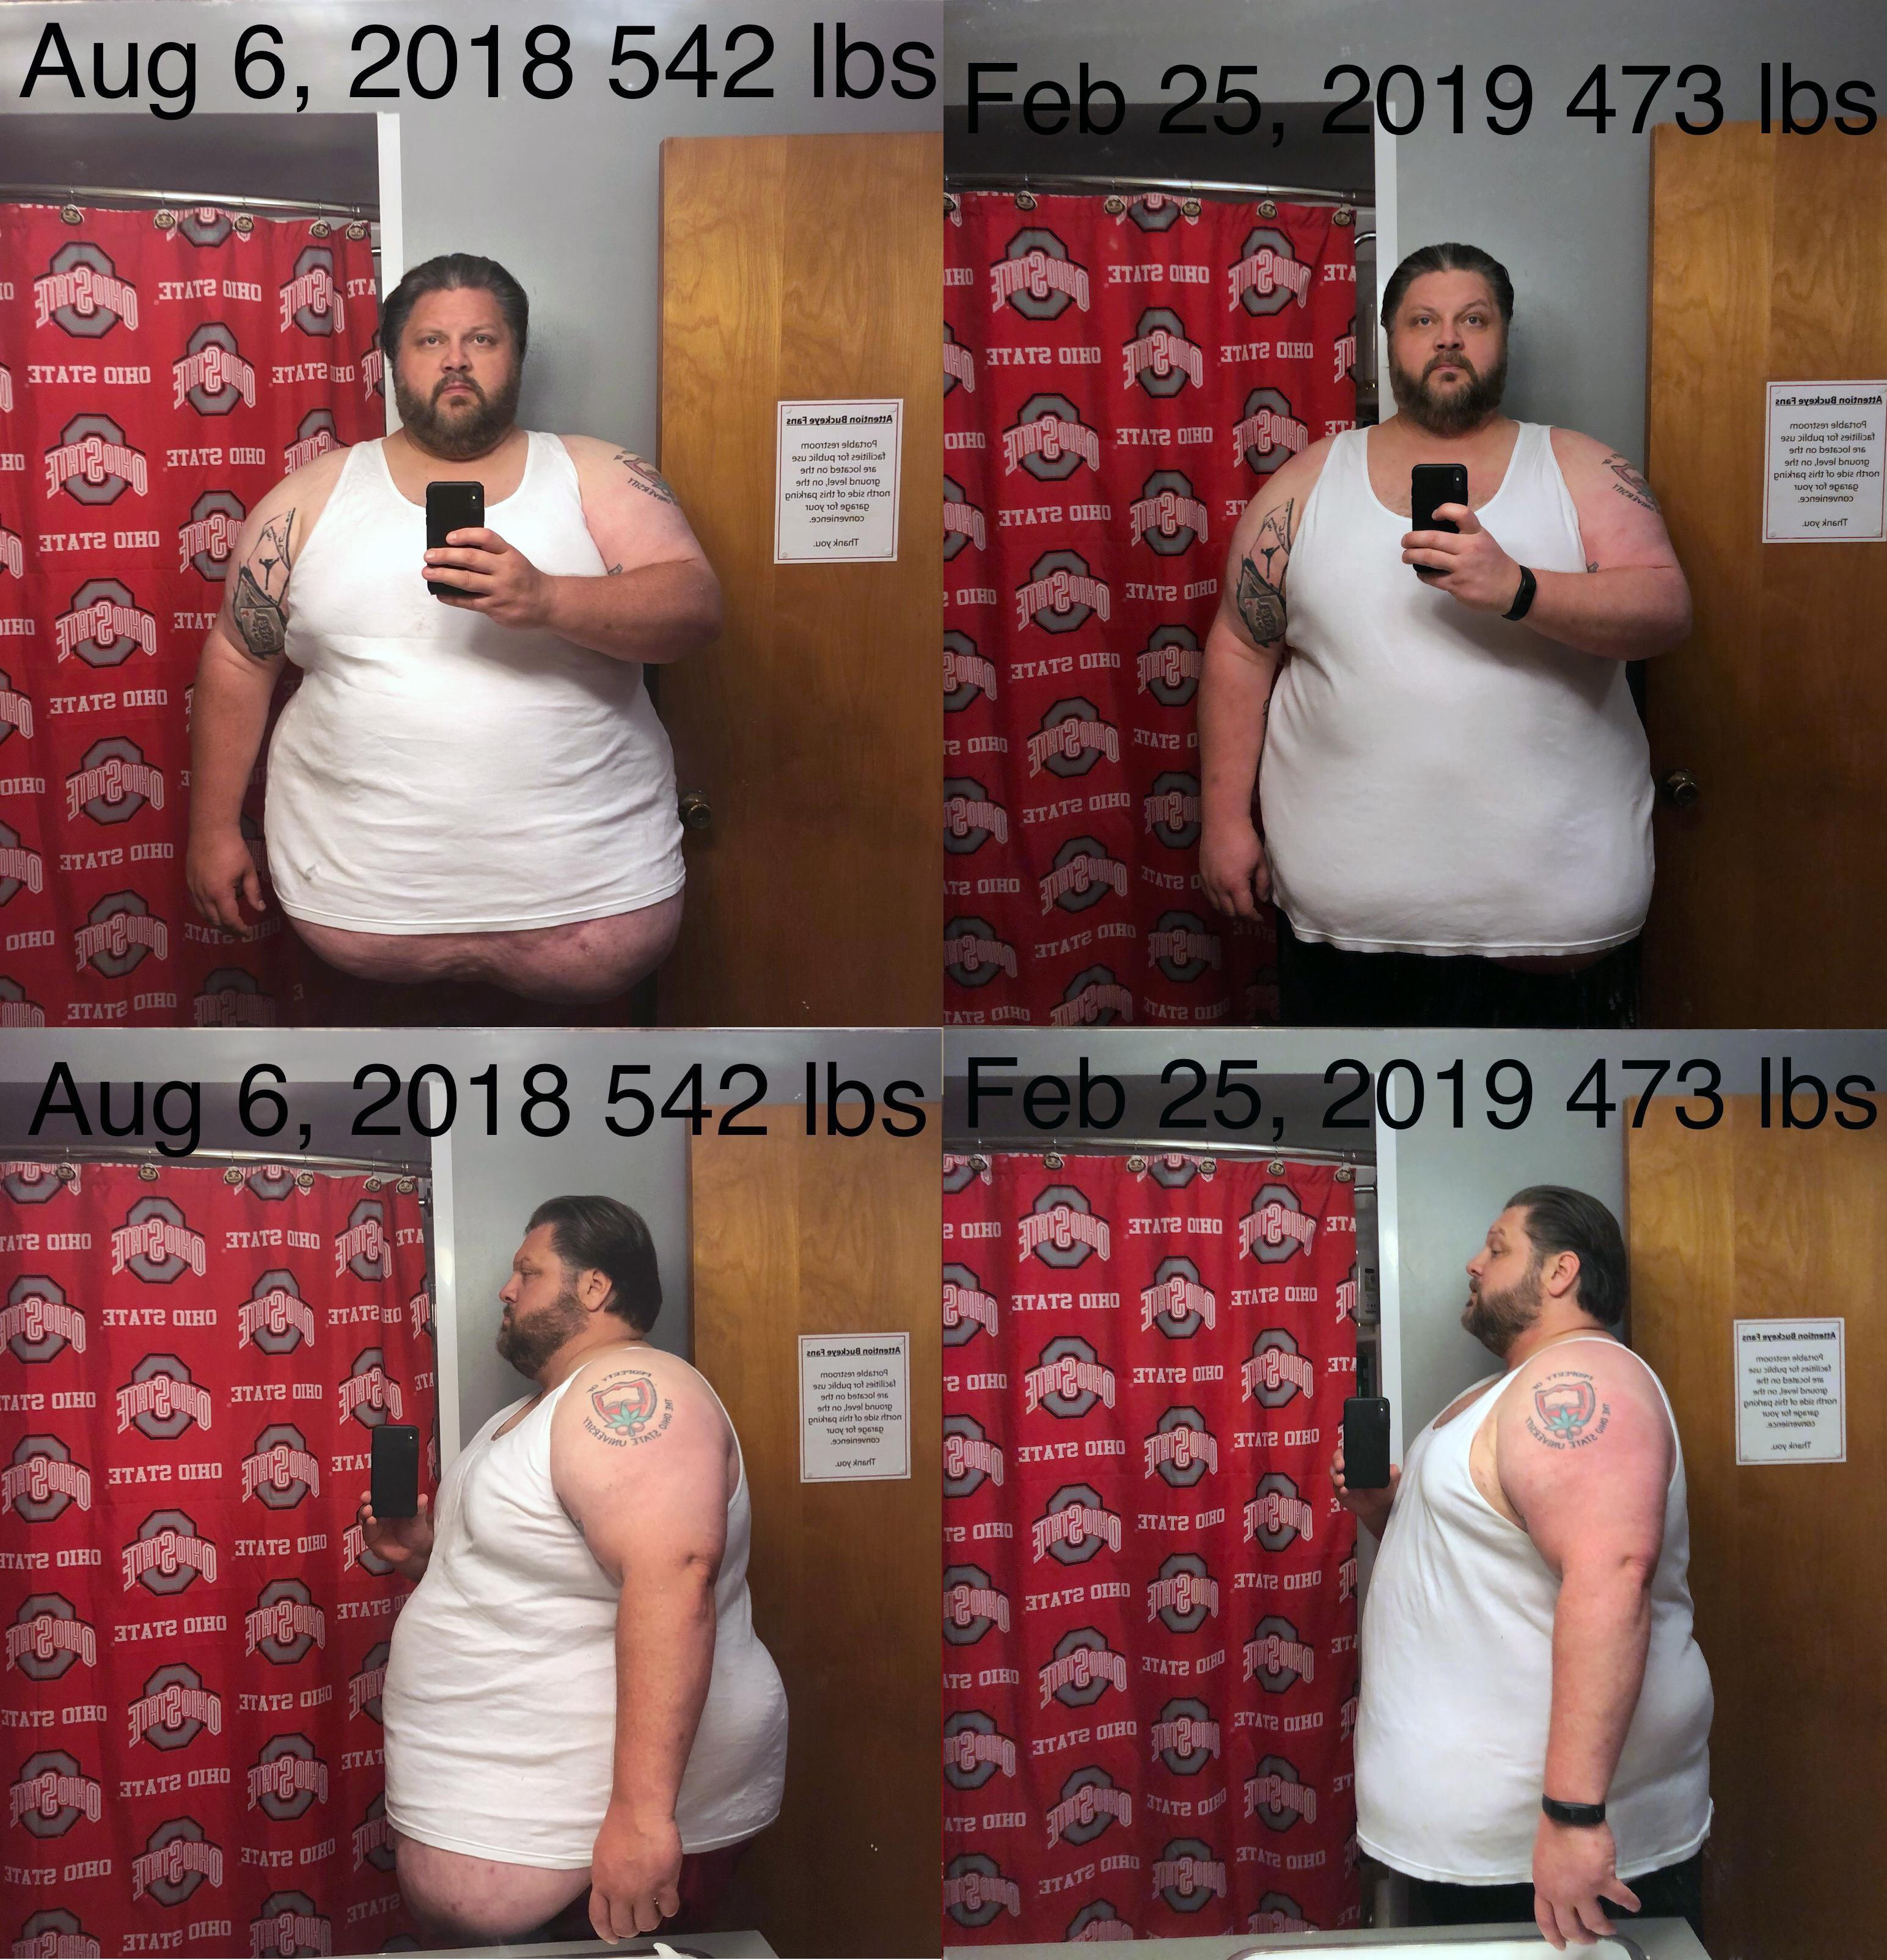 69 lbs Fat Loss Before and After 6 foot 1 Male 542 lbs to 473 lbs